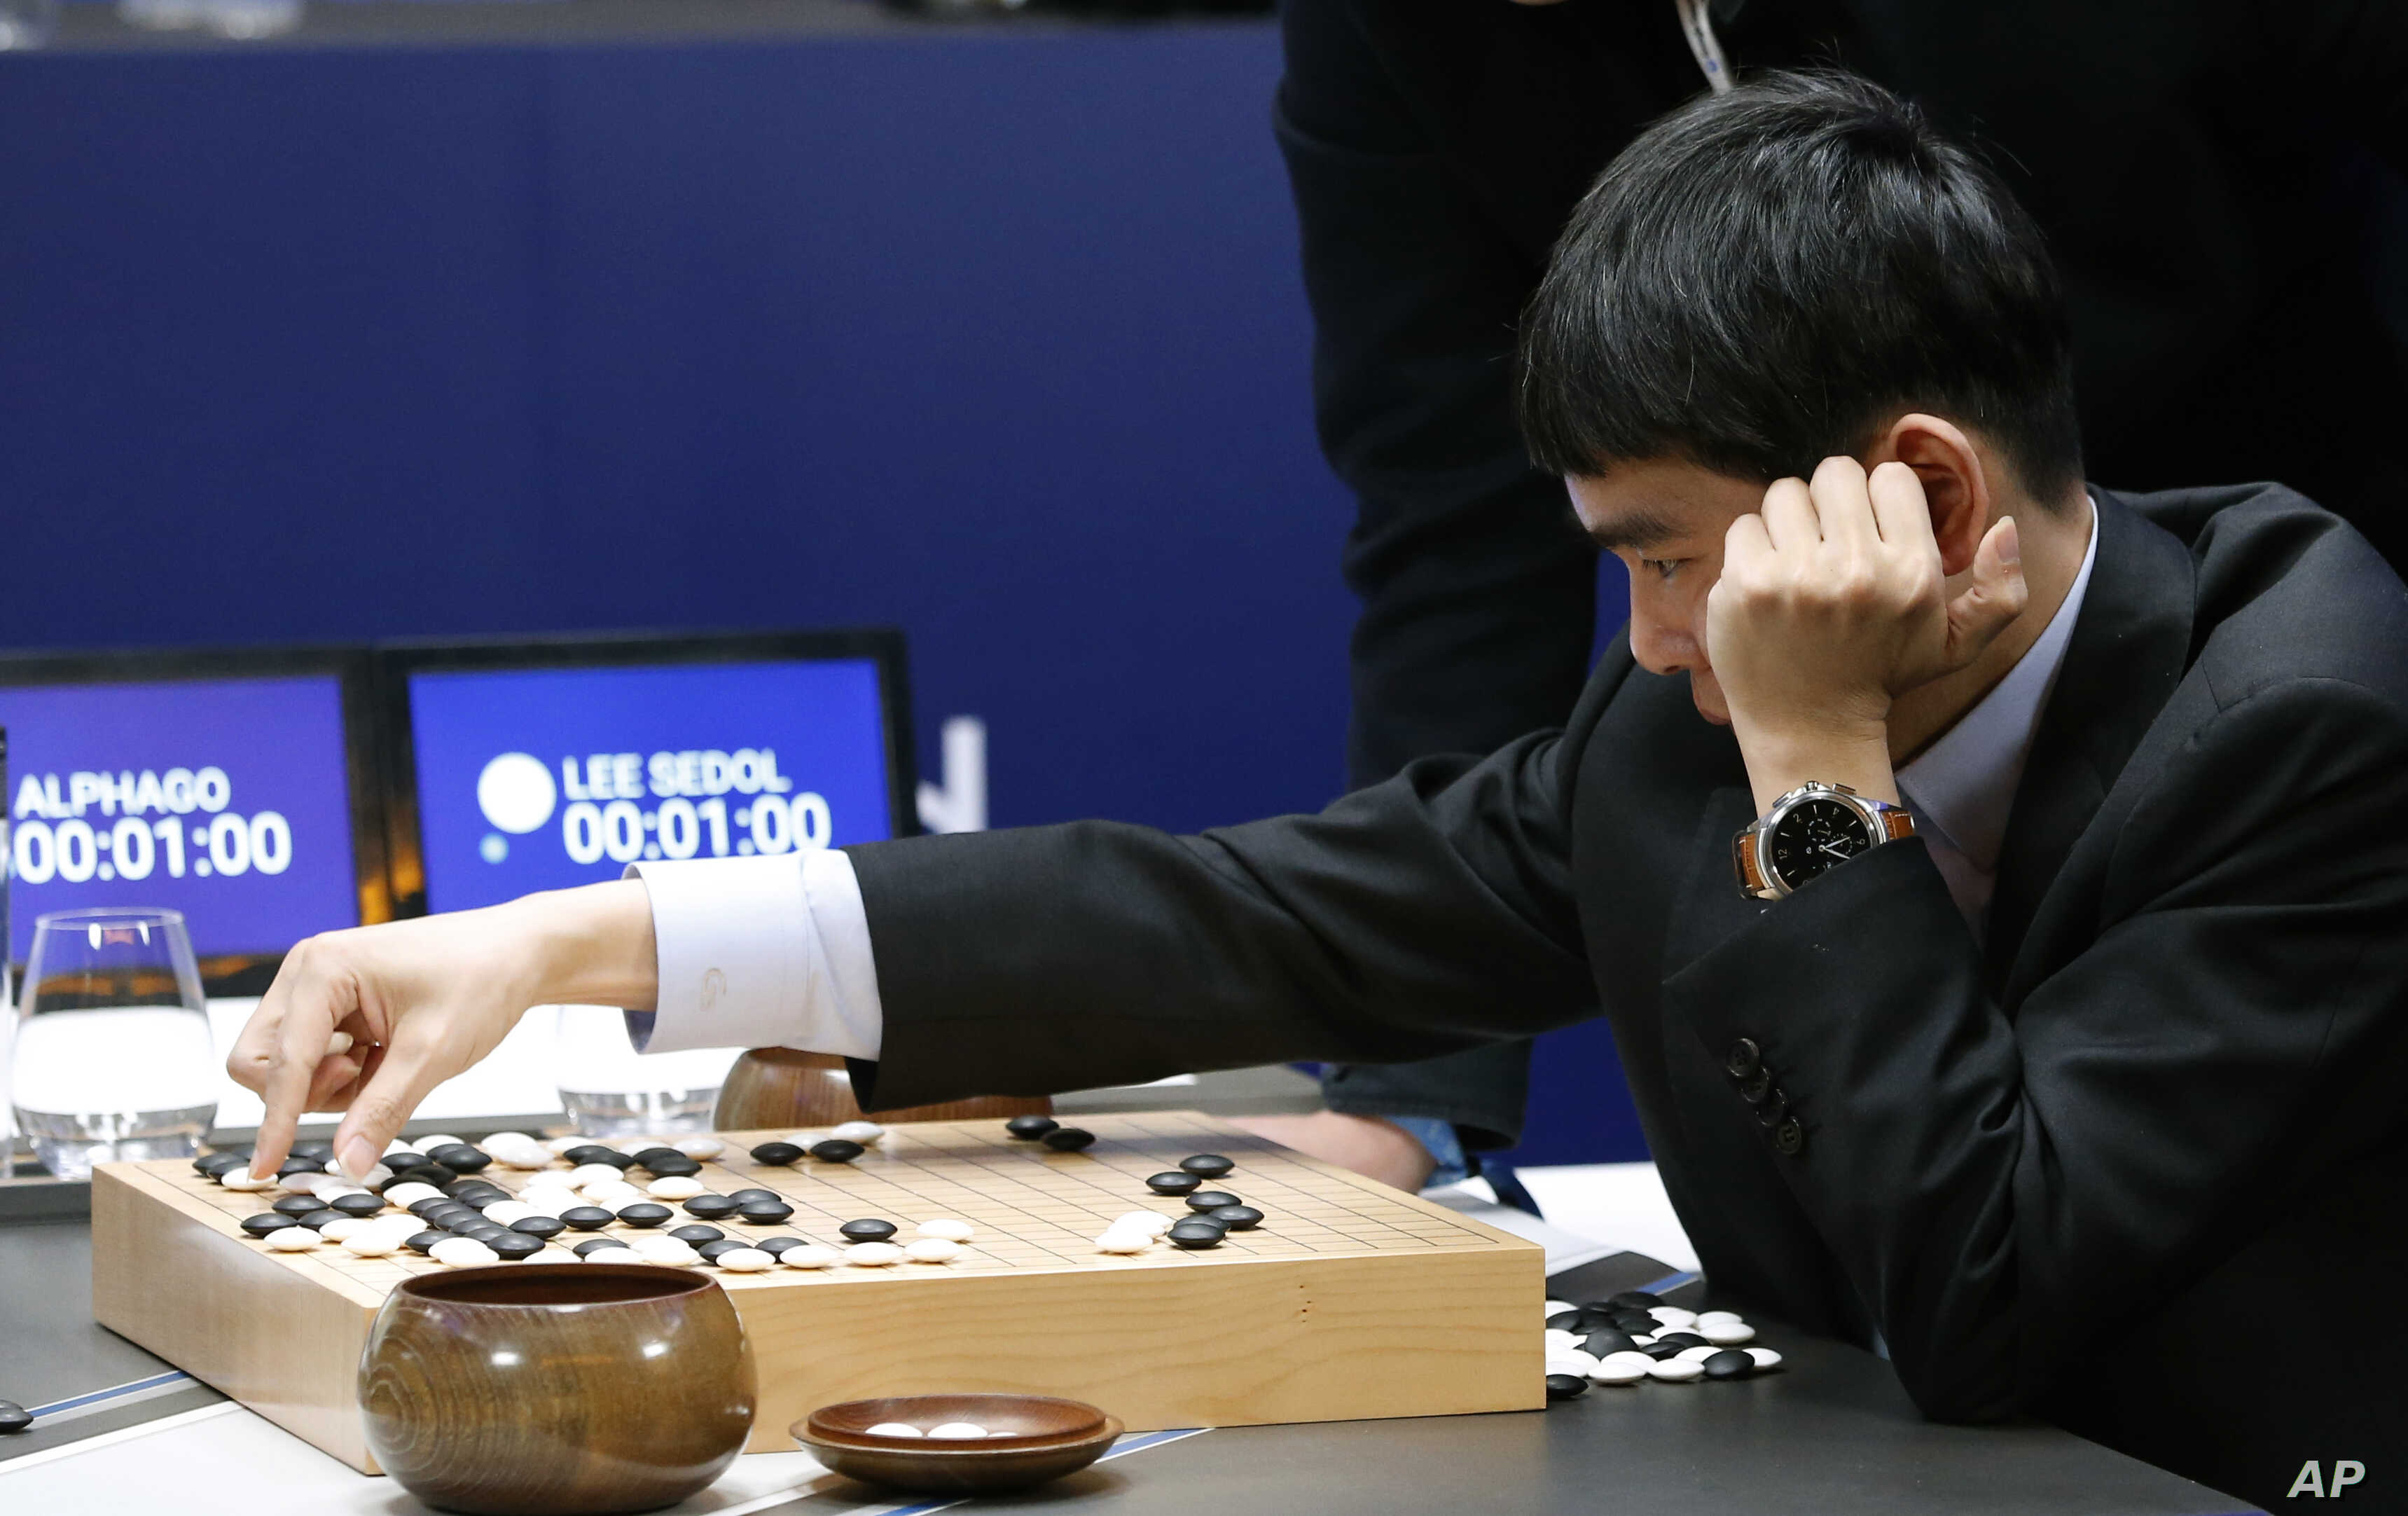 South Korean professional Go player Lee Sedol reviews the match himself after finishing the second match of the Google DeepMind Challenge Match against Google's artificial intelligence program, AlphaGo in Seoul, South Korea, March 10, 2016.